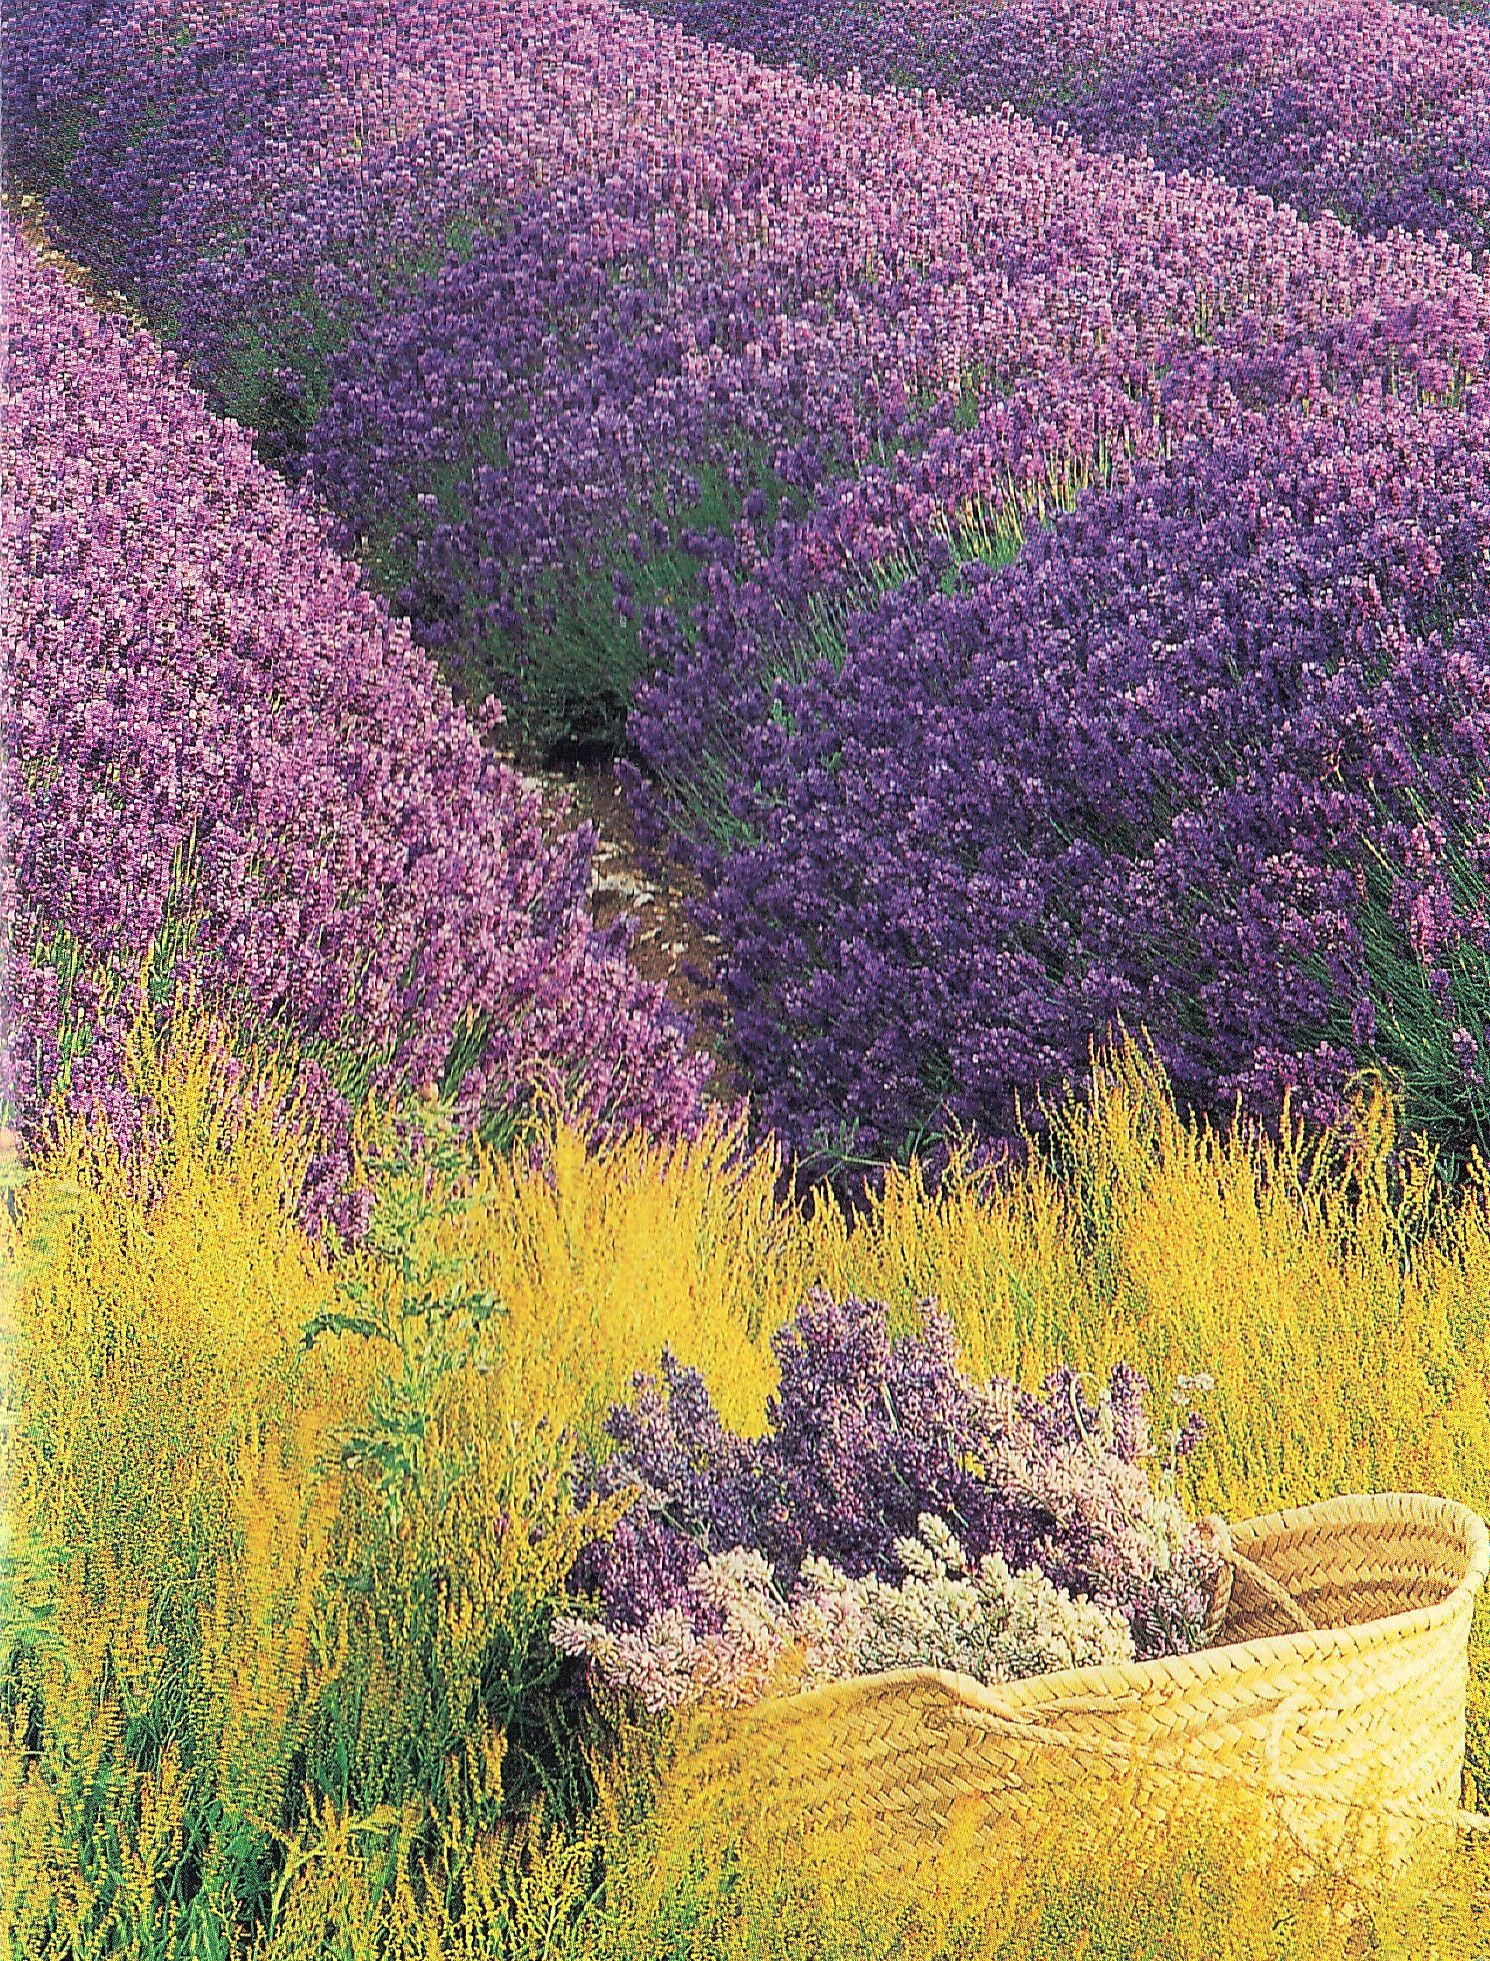 Lavender Fields | Lavanda | Pinterest